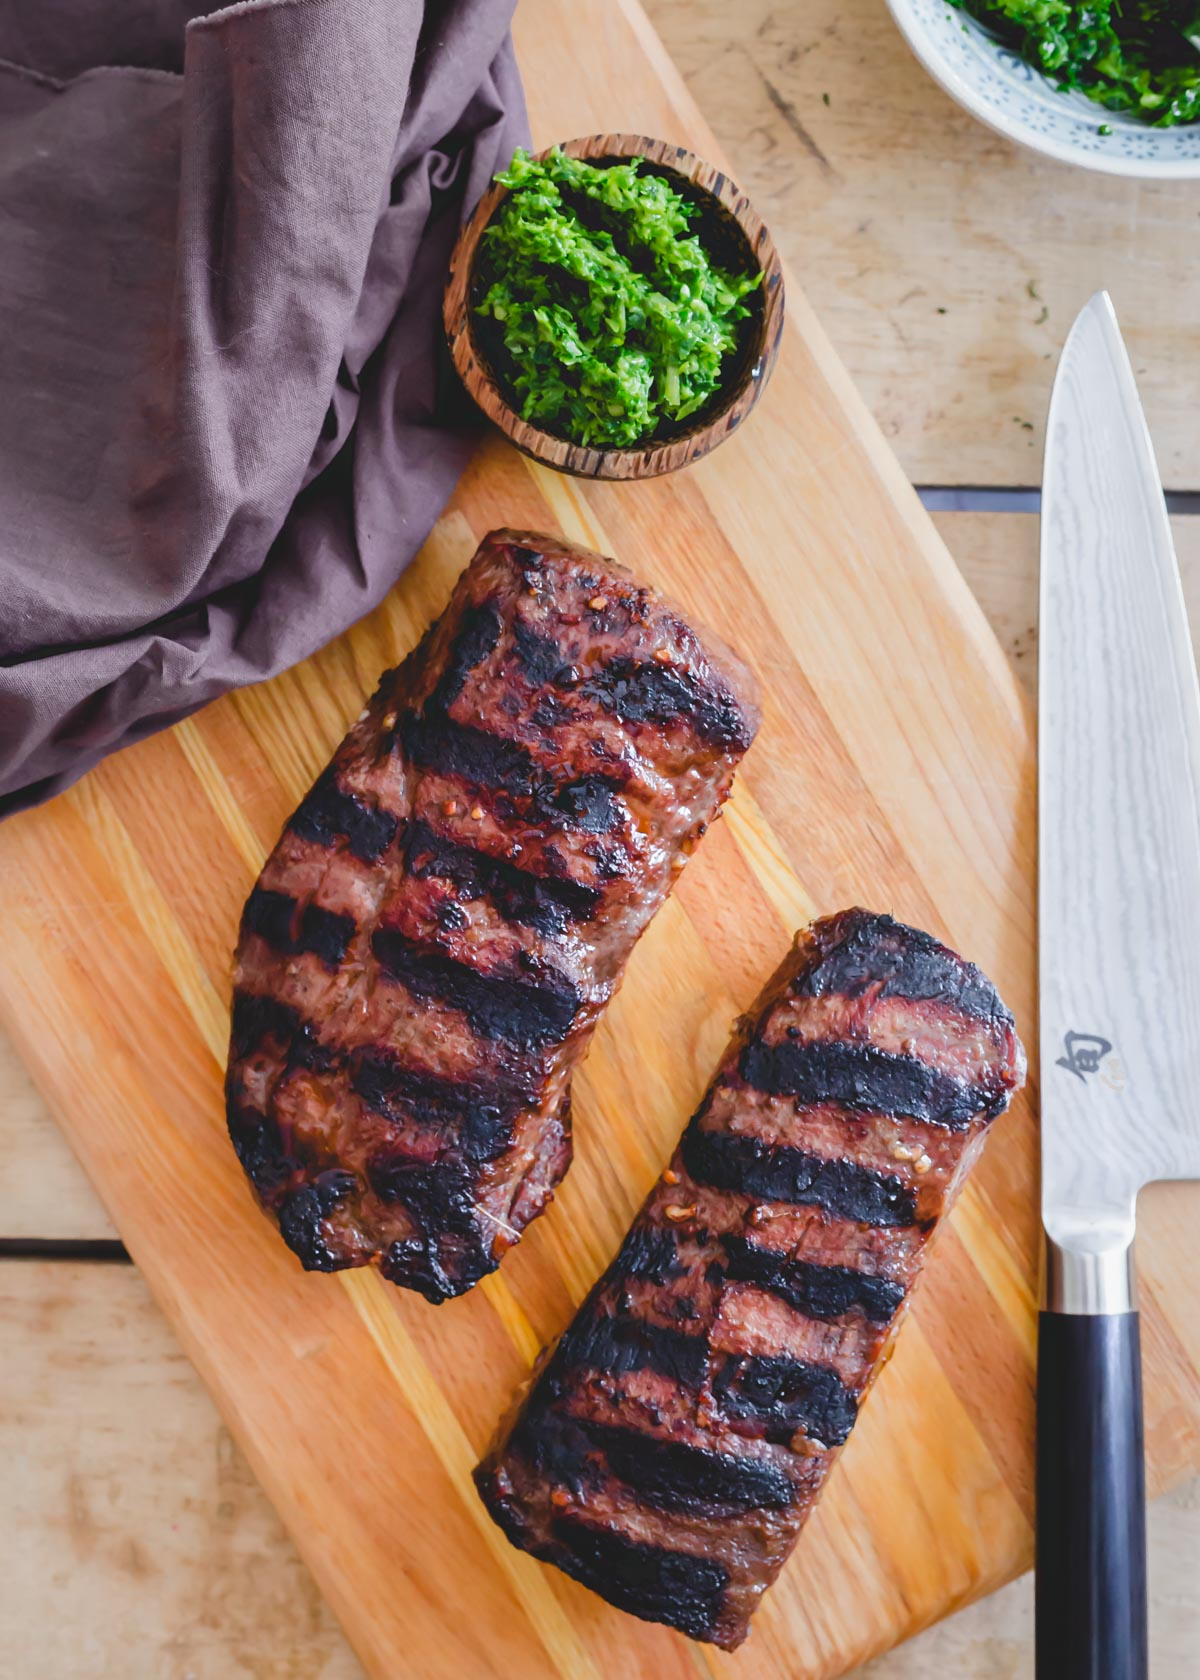 Two pieces of grilled venison backstrap on a cutting board.